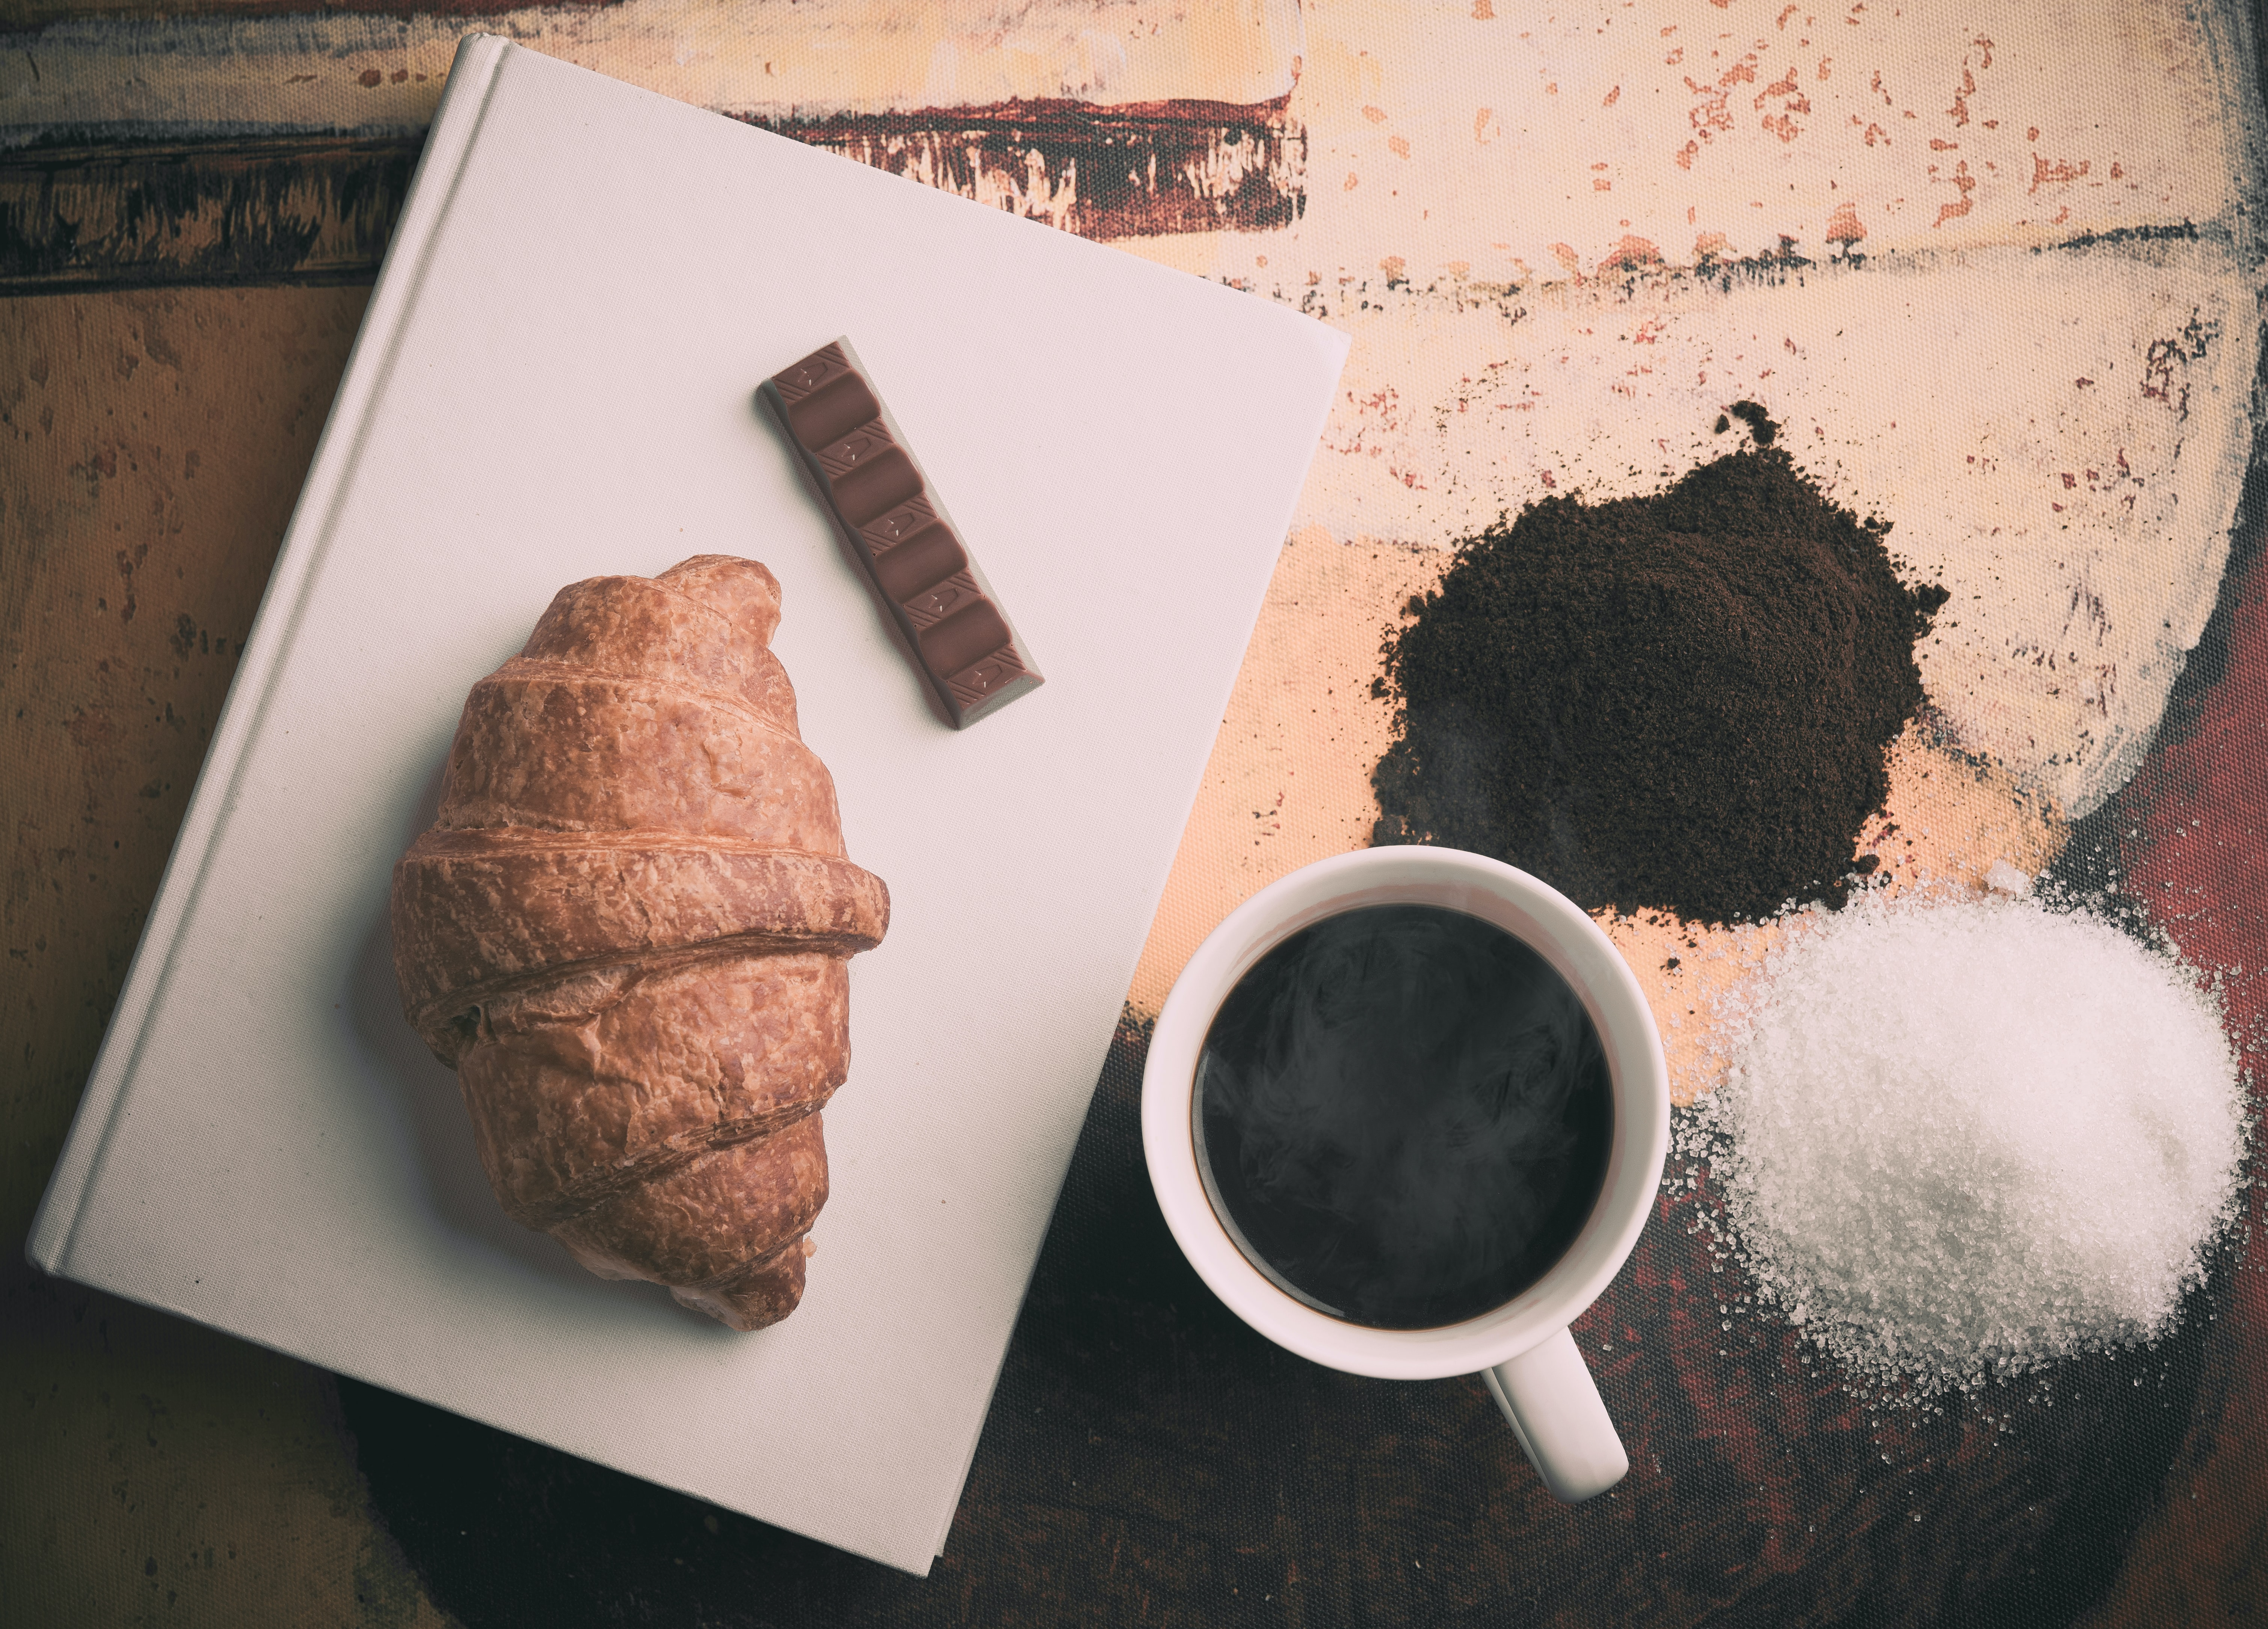 A croissant, chocolate, book, coffee cup, sugar, and coffee grounds on a table